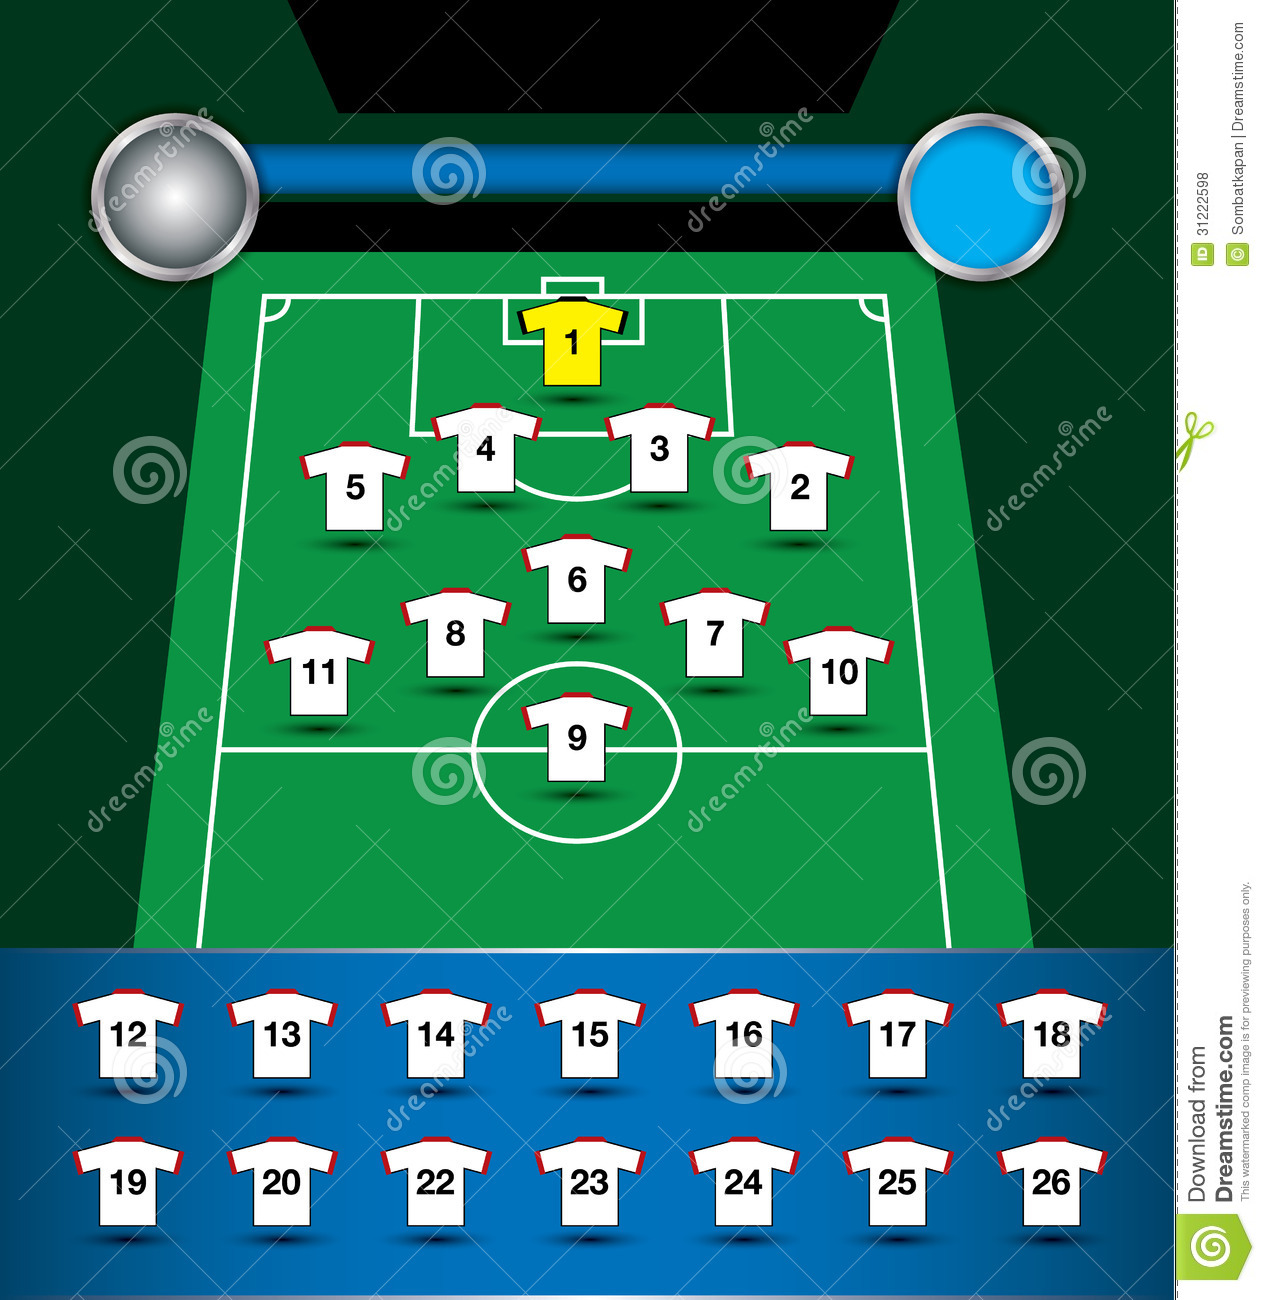 Soccer Player Field Positions Diagram Wiring Diagrams